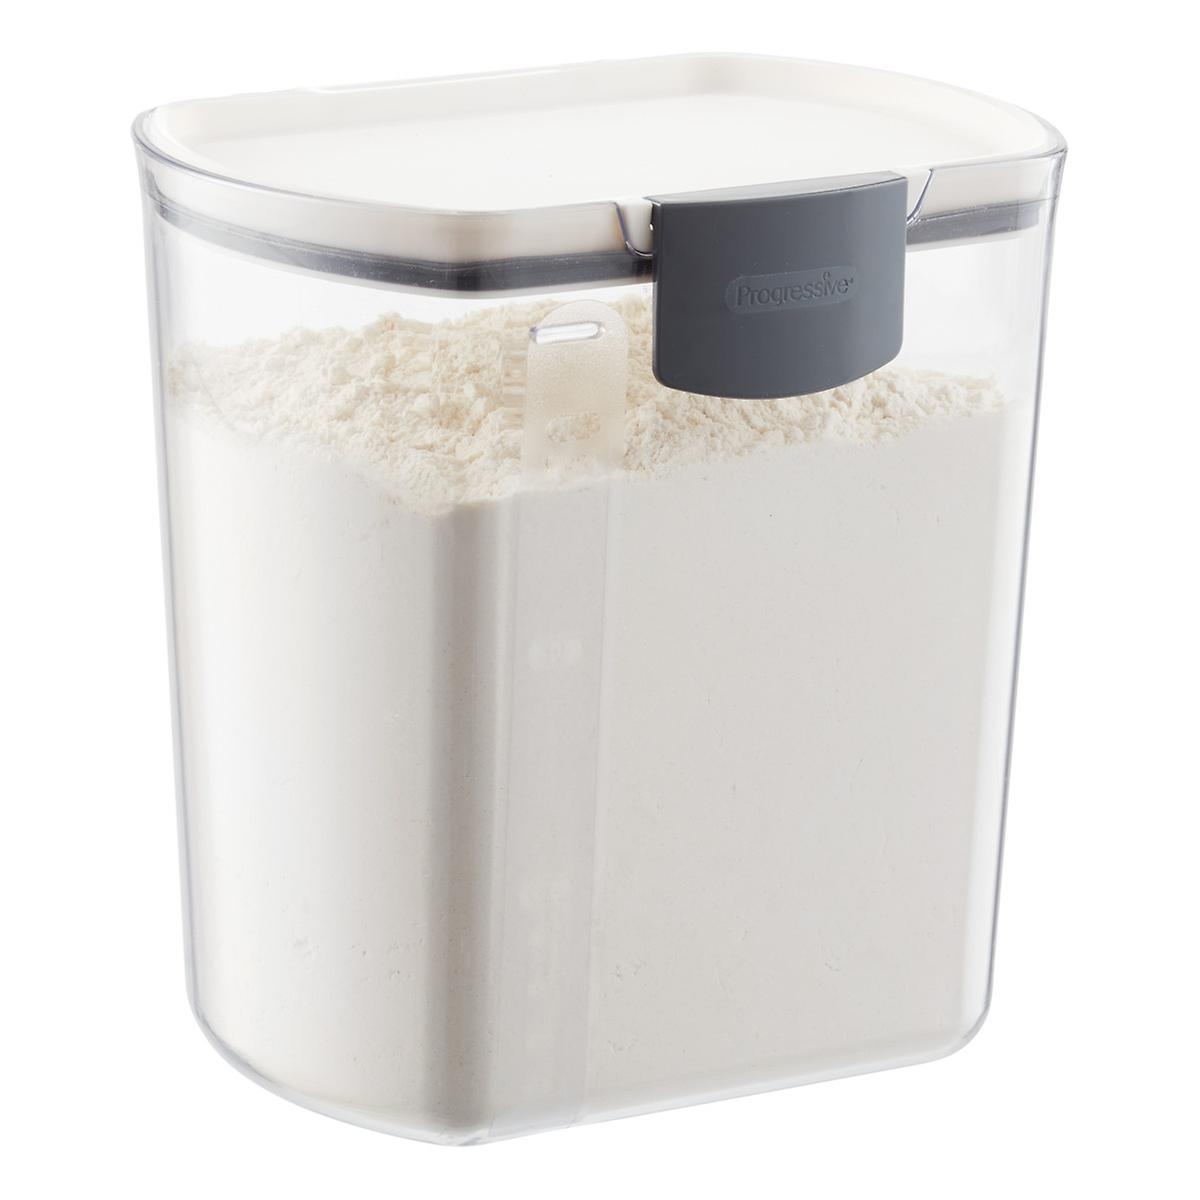 ProKeeper 4 qt. Flour Container | The Container Store